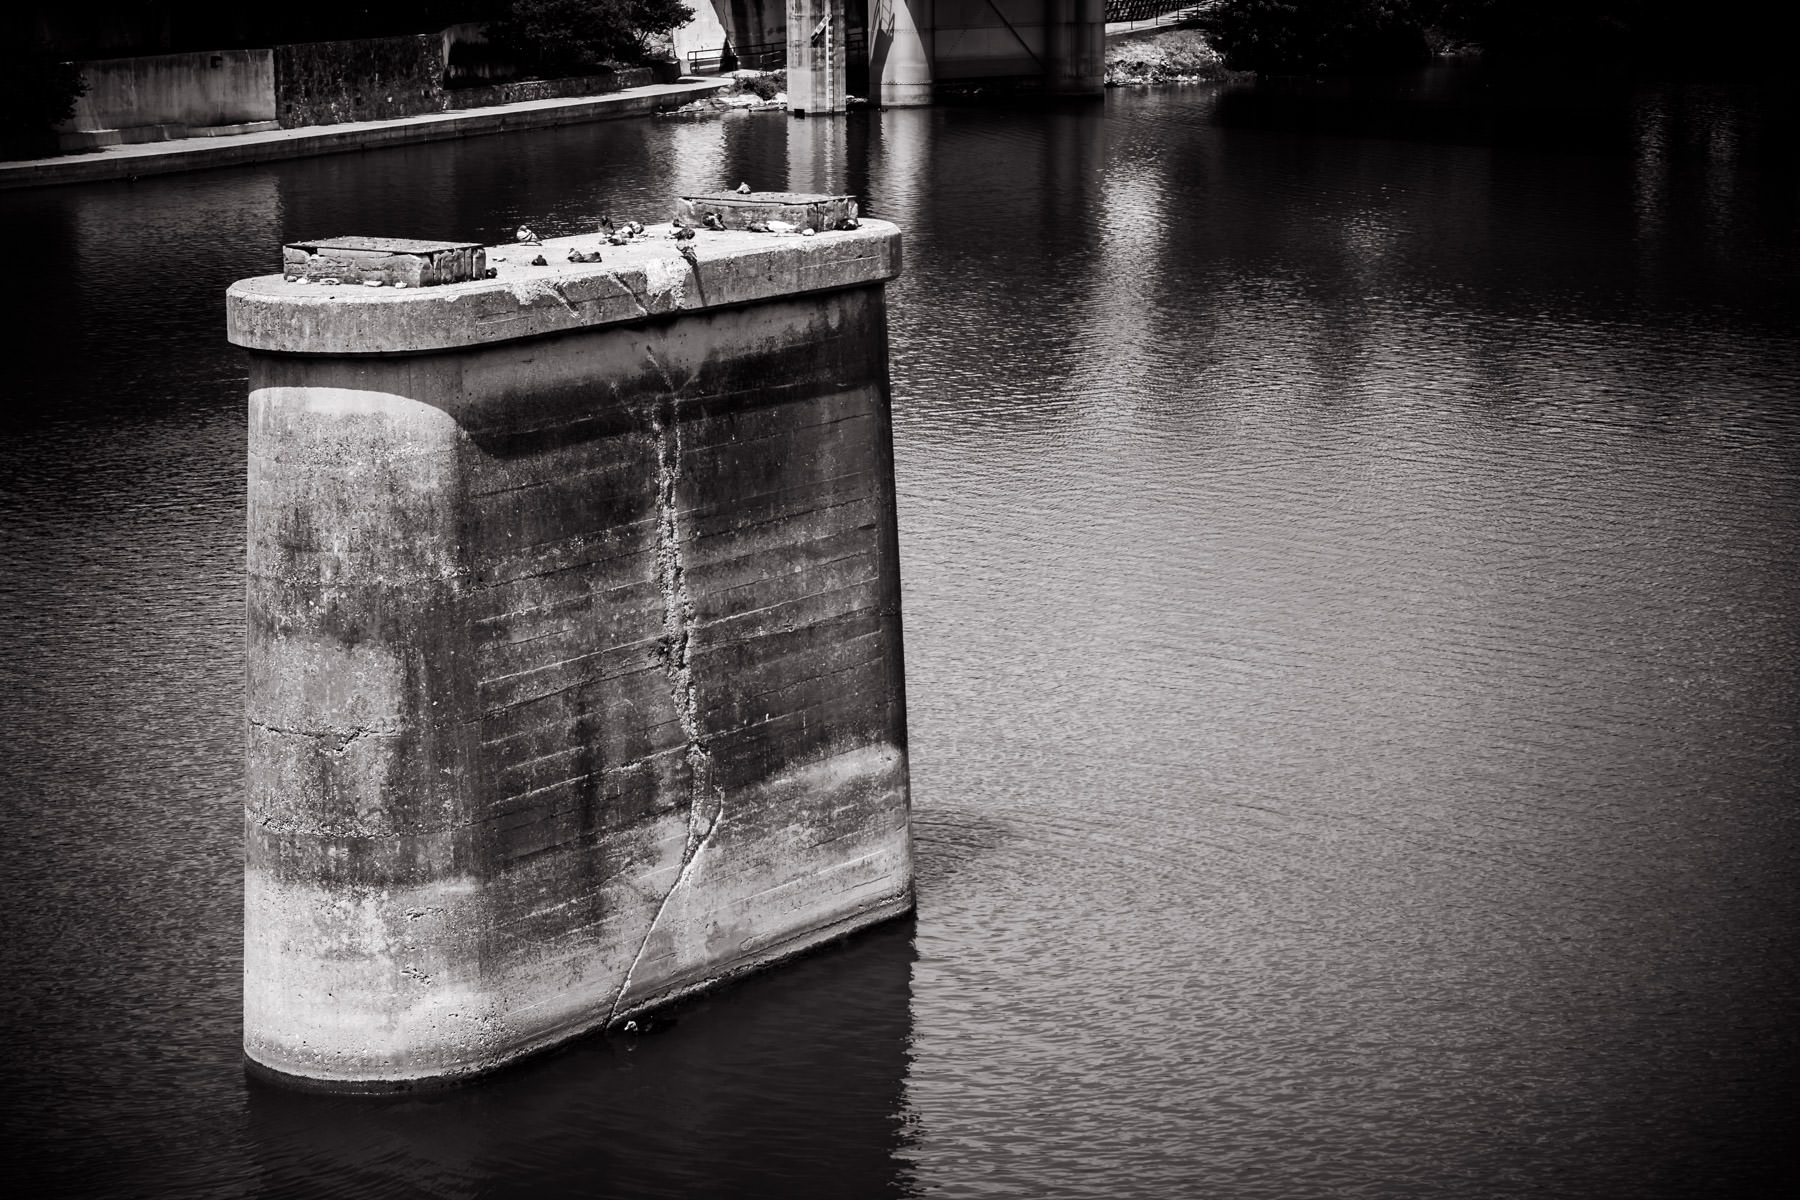 The support structure of a long-gone bridge on the Brazos River in Waco, Texas.